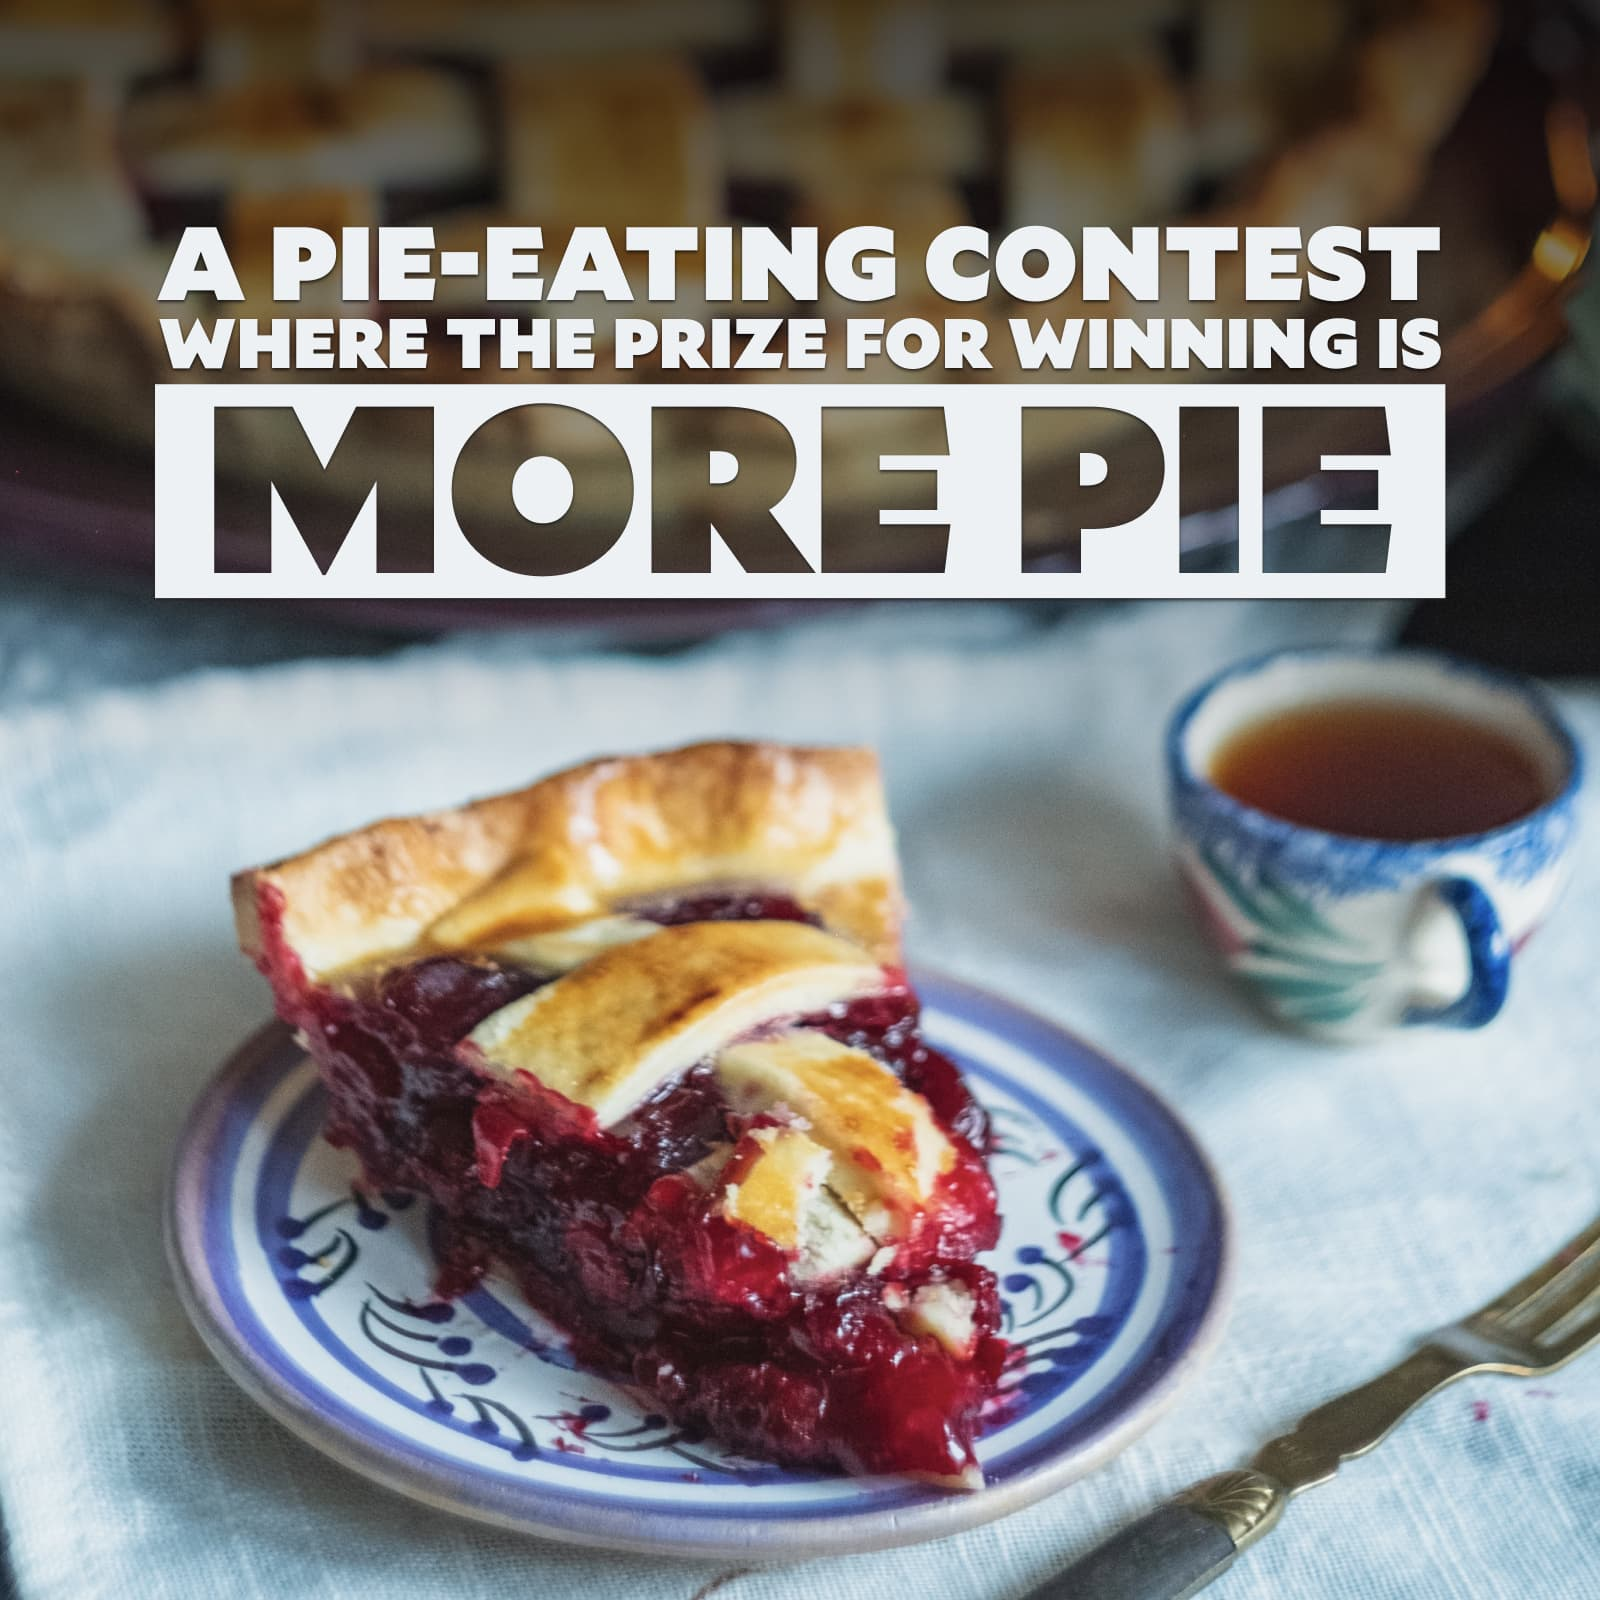 """photo of pie with the caption """"a pie-eating contest where the prize for winning is more pie"""""""